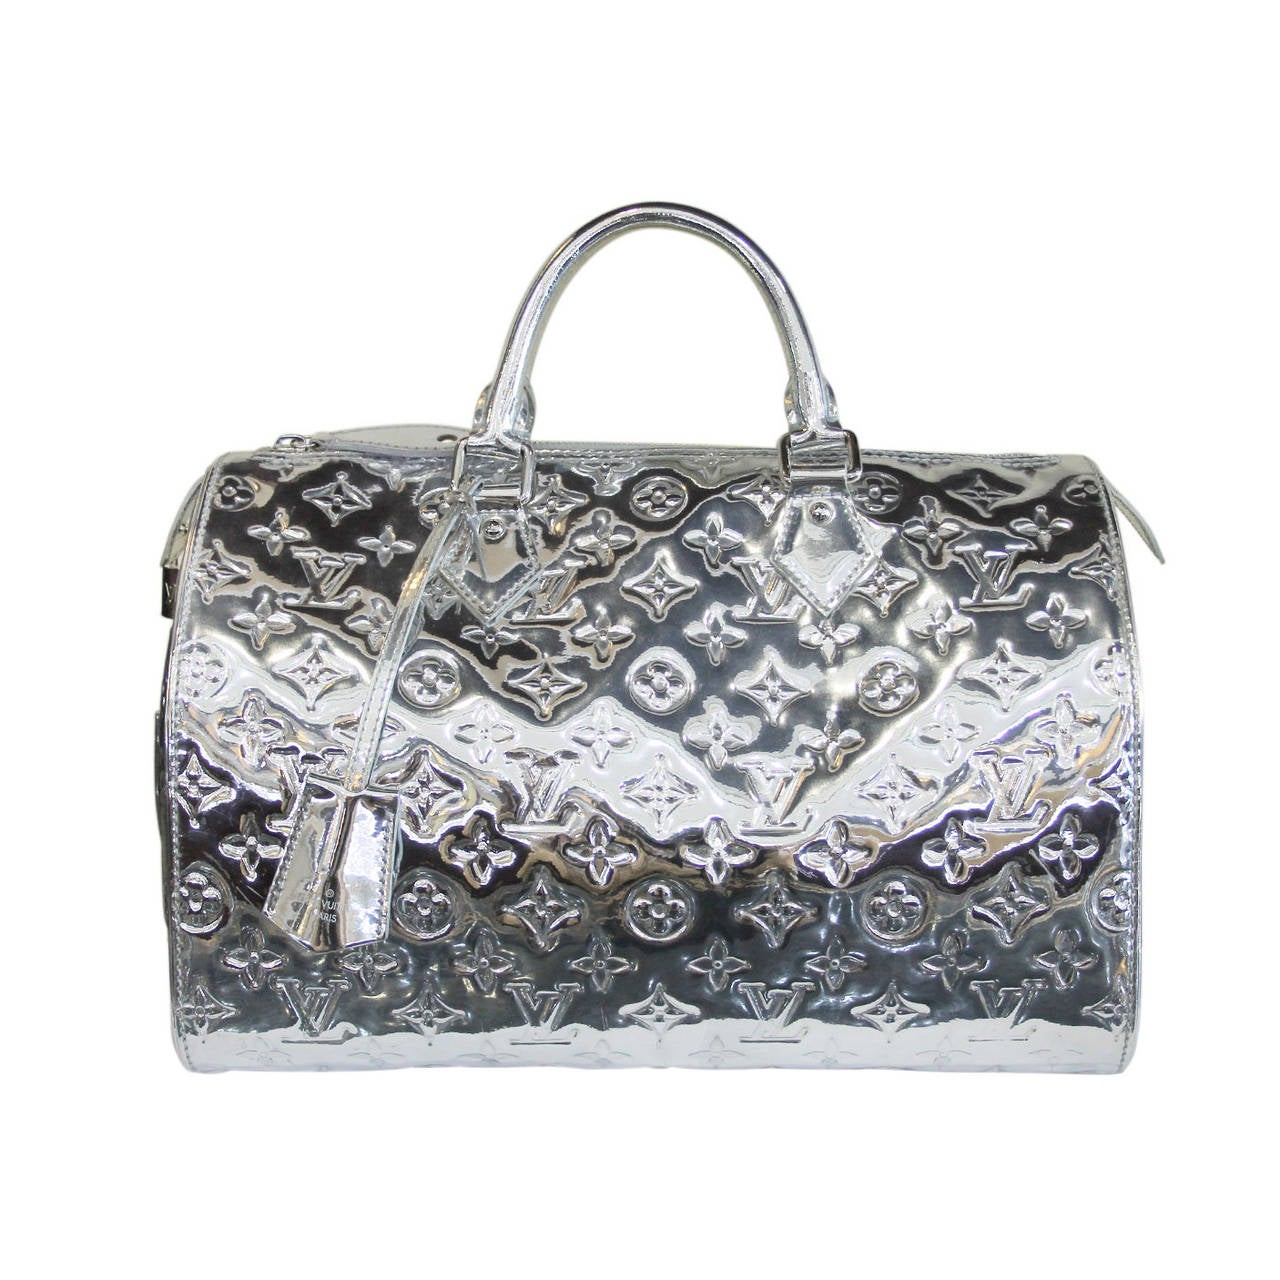 Louis vuitton speedy 30 silver monogram miroir handbag for Louis vuitton monogram miroir